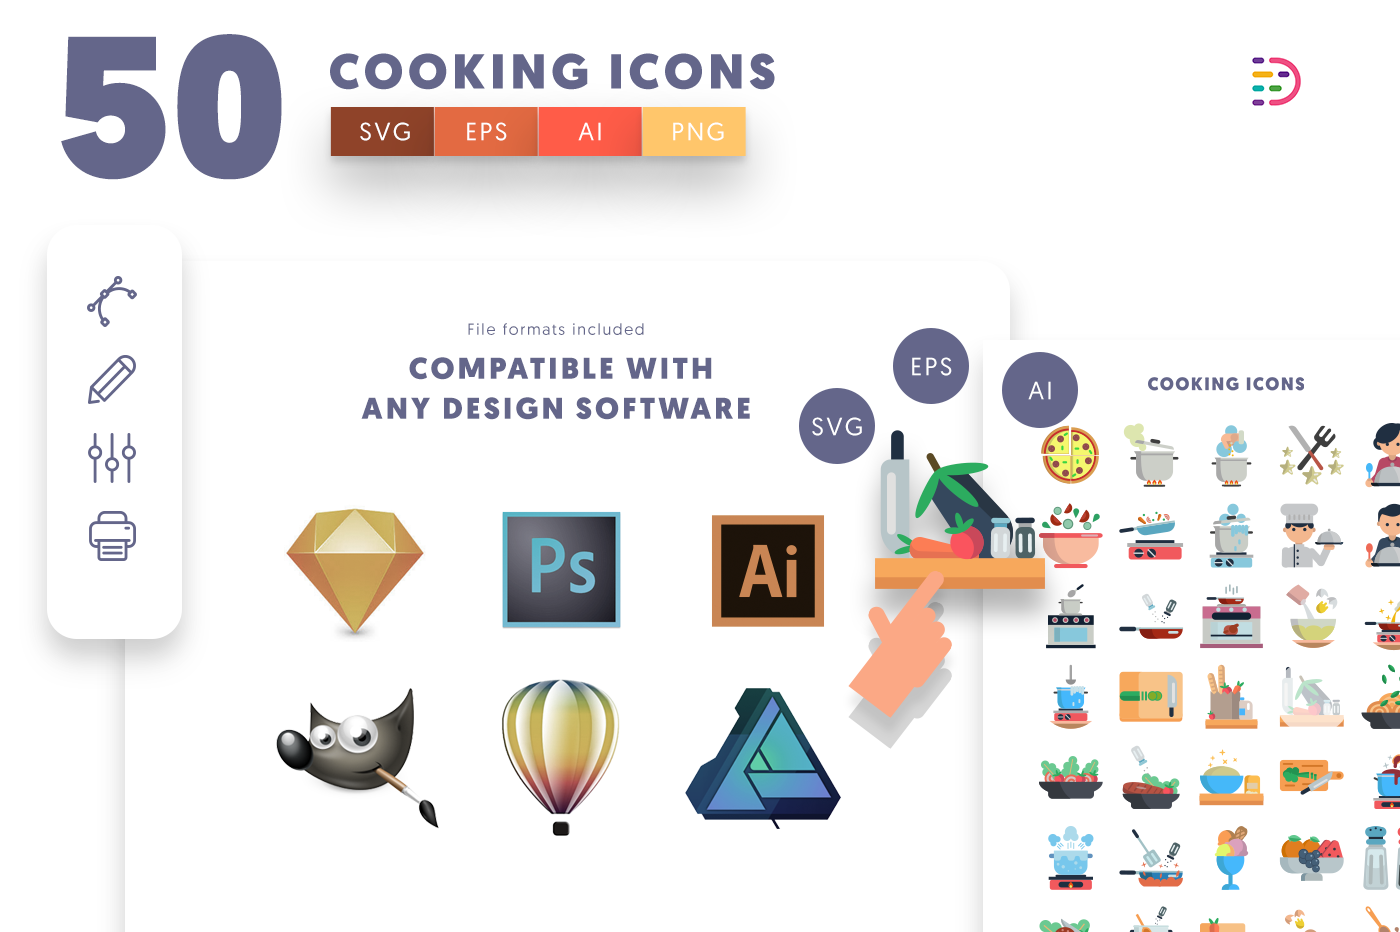 full vector 50 Cooking Icons EPS, SVG, PNG